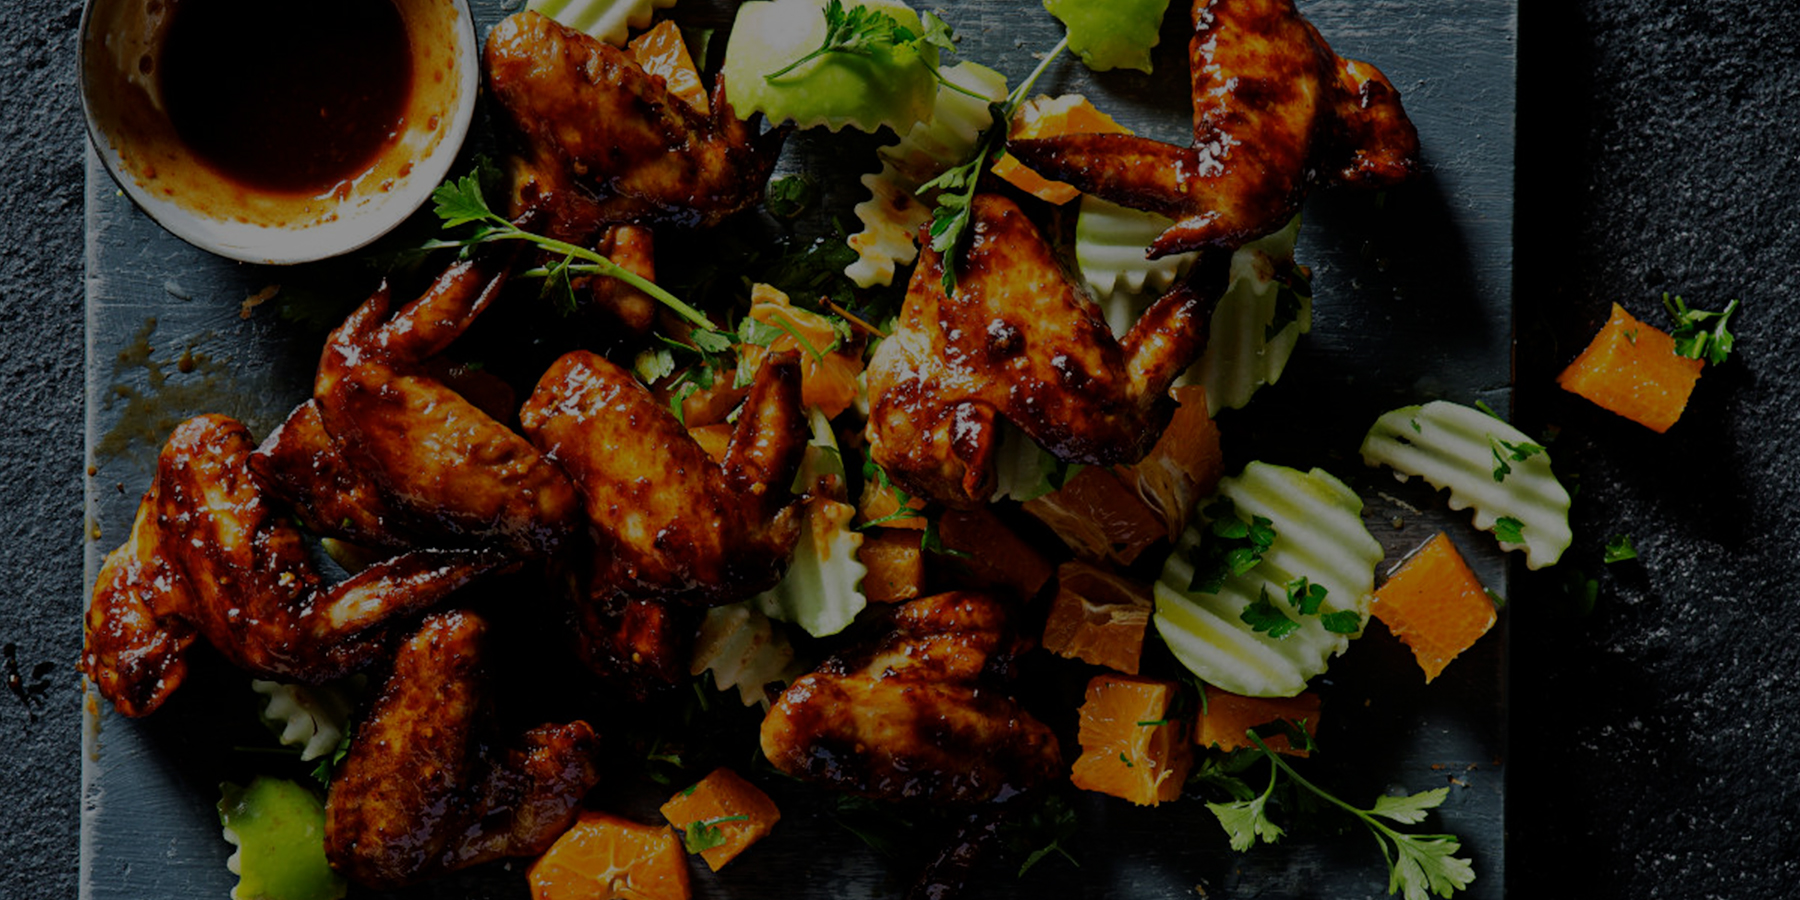 Sticky wings with apple and orange salsa